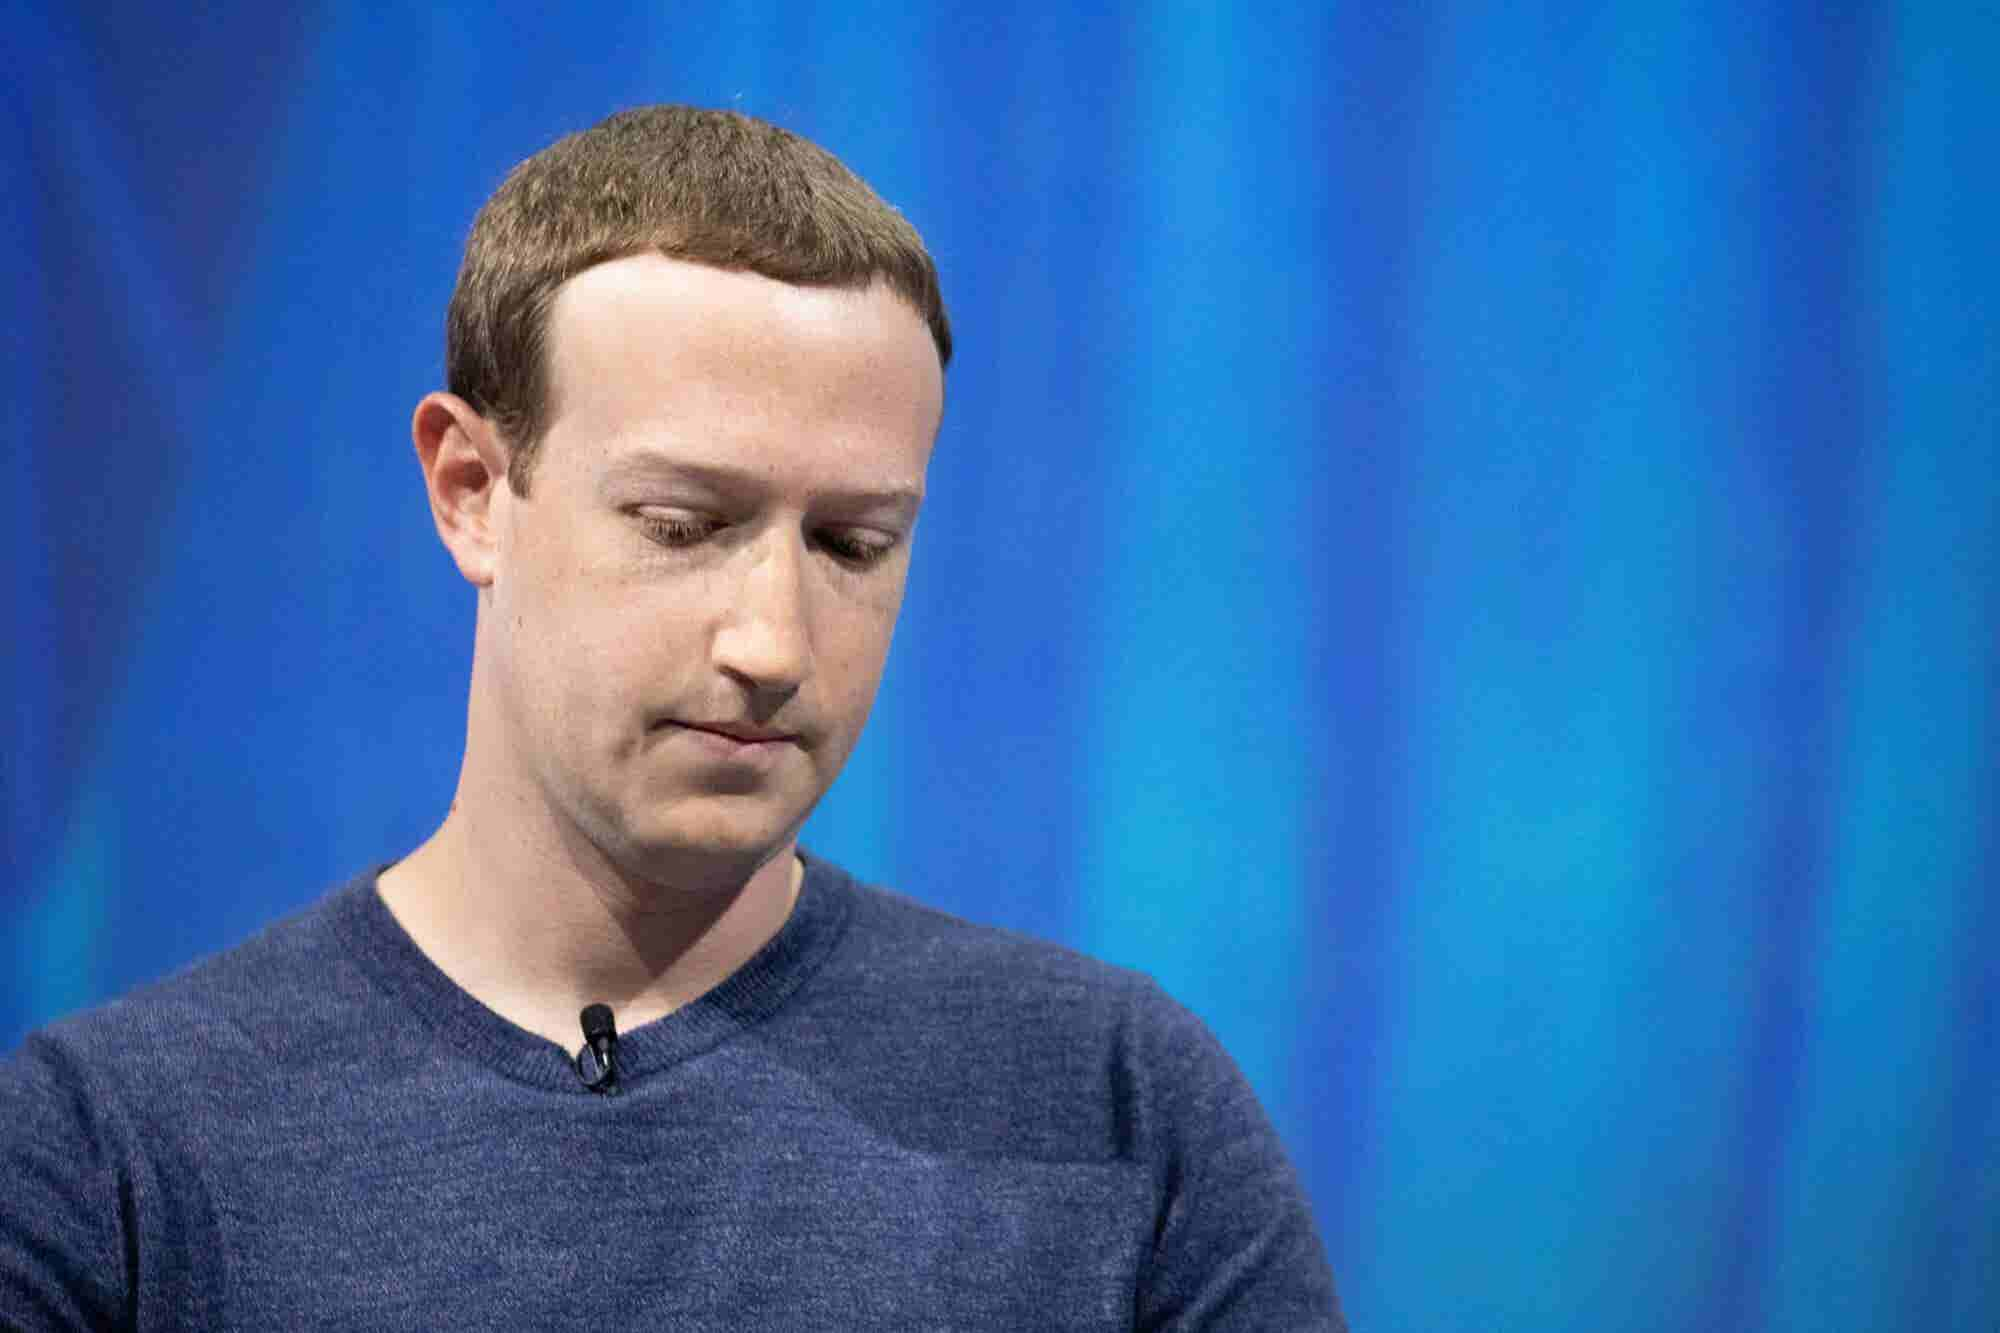 Facebook Had a Very Bad Week Last Week, and Things Did Not Improve Today